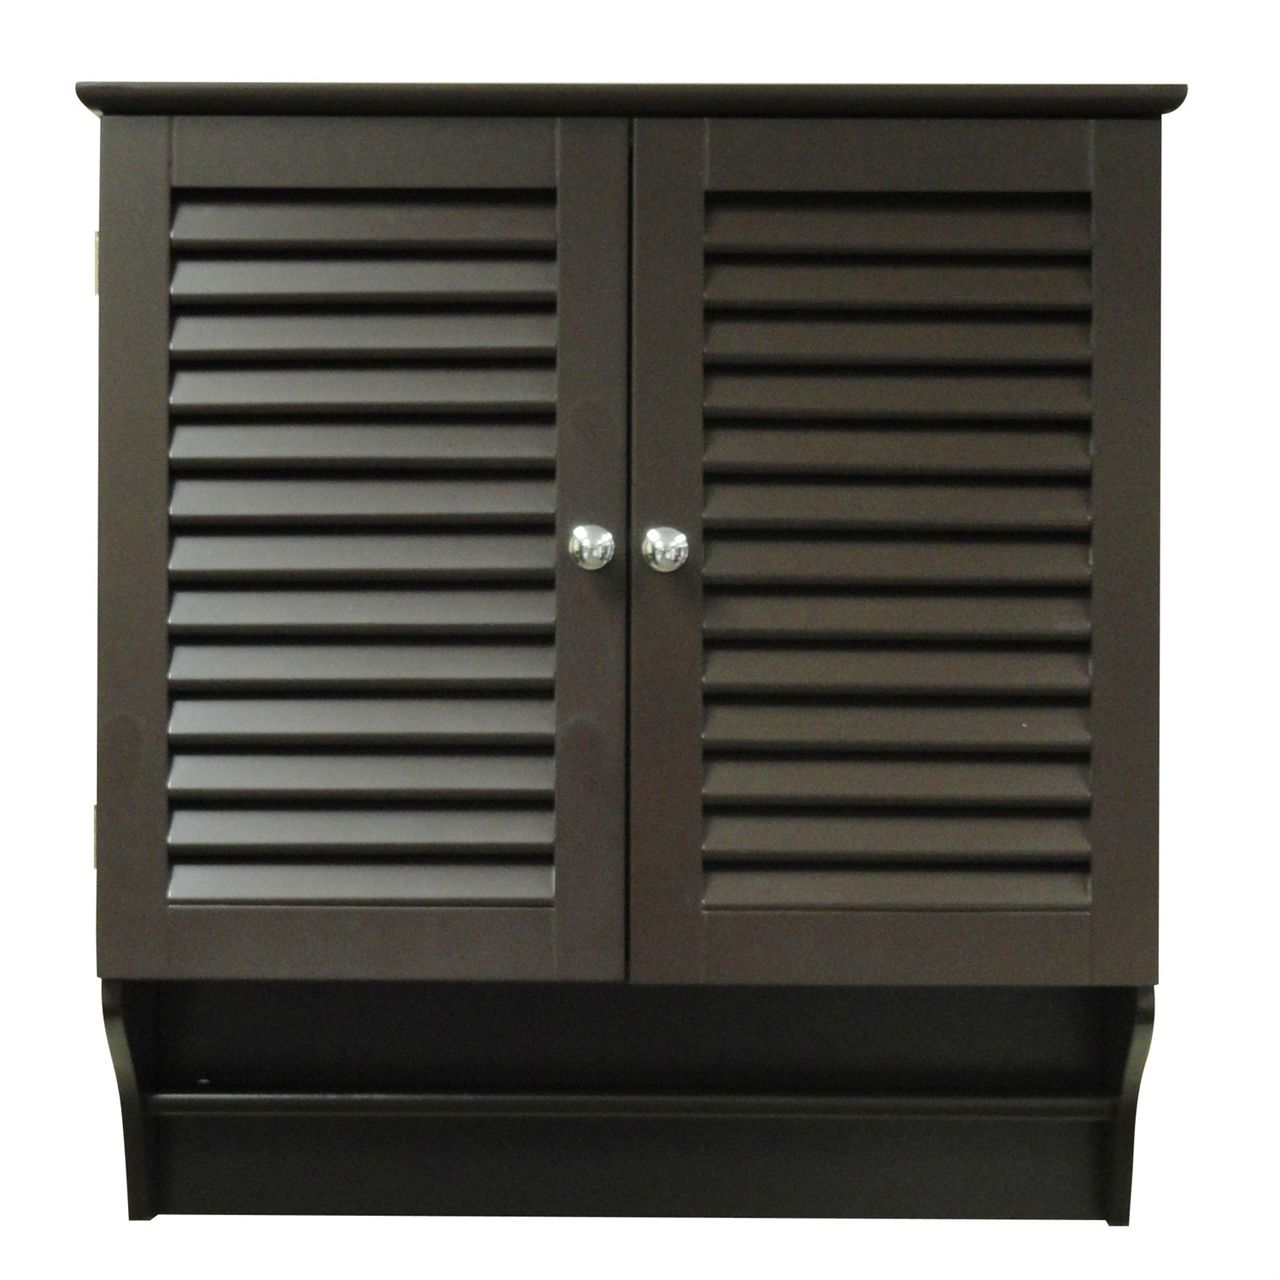 Espresso Wall Mounted Bathroom Cabinet with Shelves and Towel Bar ...